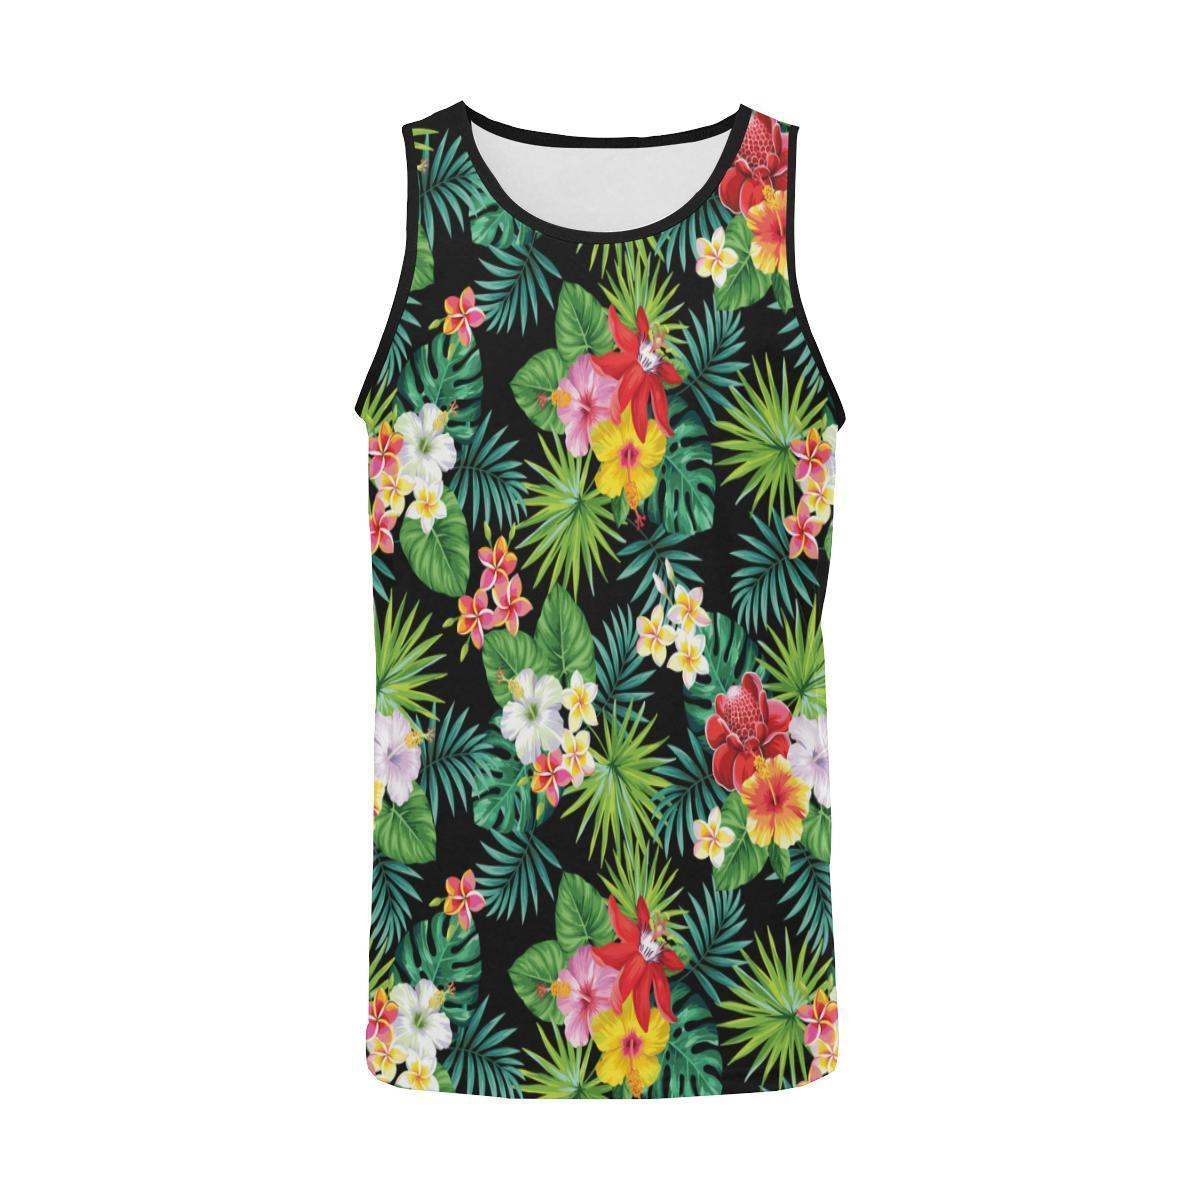 b290999a2301f1 Size Guide. undefined. SIZE GUIDE. Product Details. Hawaiian flower Jungle  Green Men Tank Top ...